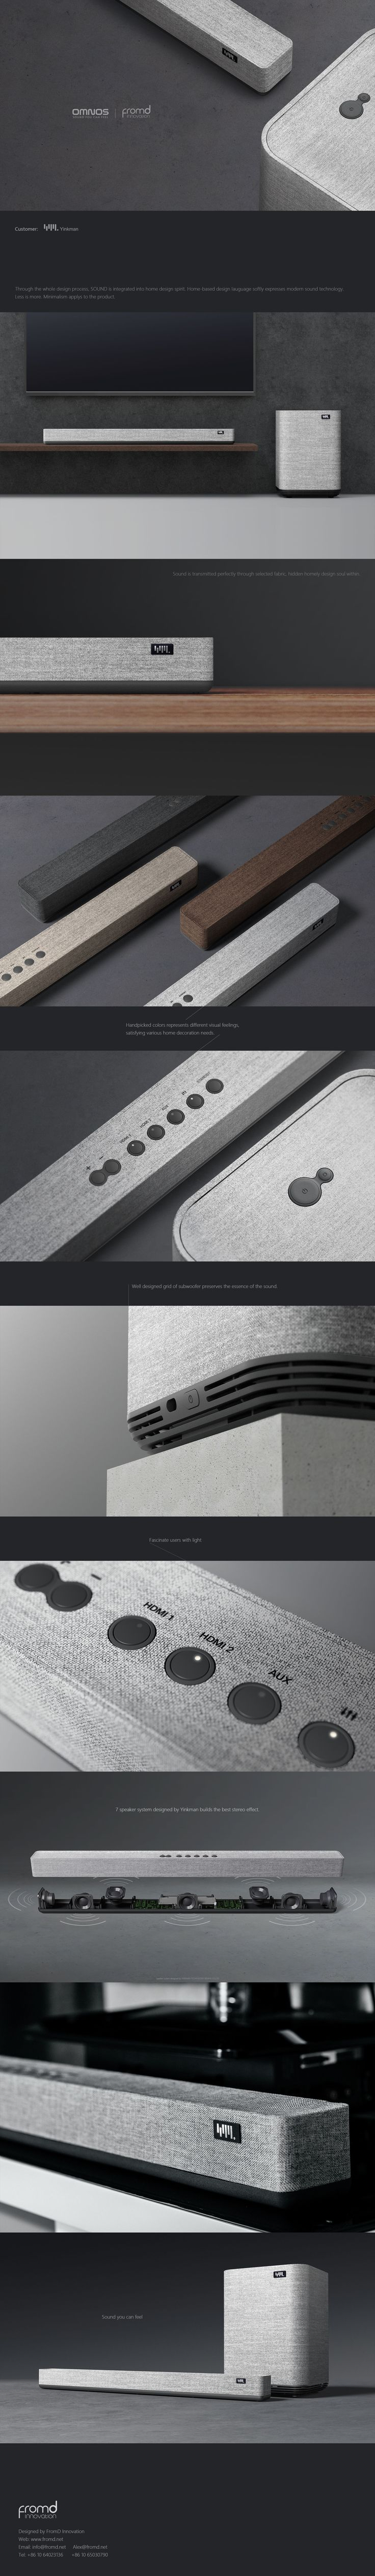 Product design: soundbar & subwoofer on Behance